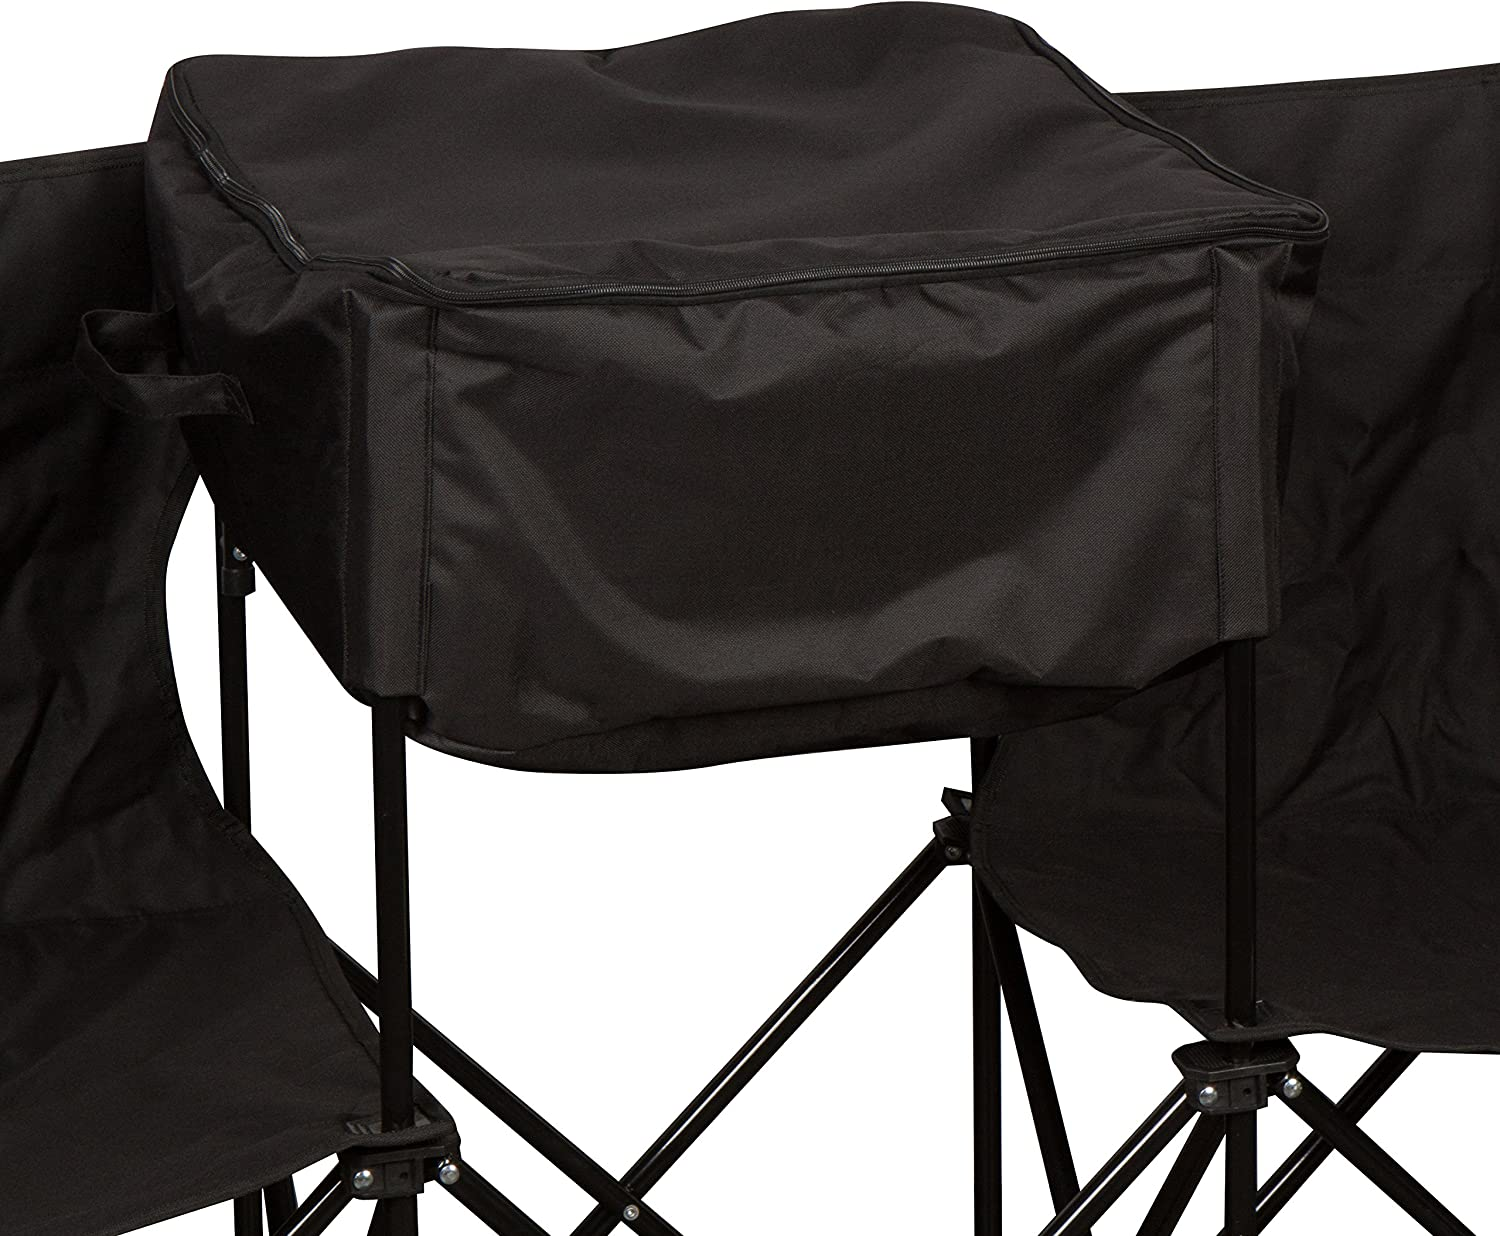 10 Portable Folding Team Sports Sideline Bench with Attached Cooler /& Full Back by Trademark Innovations